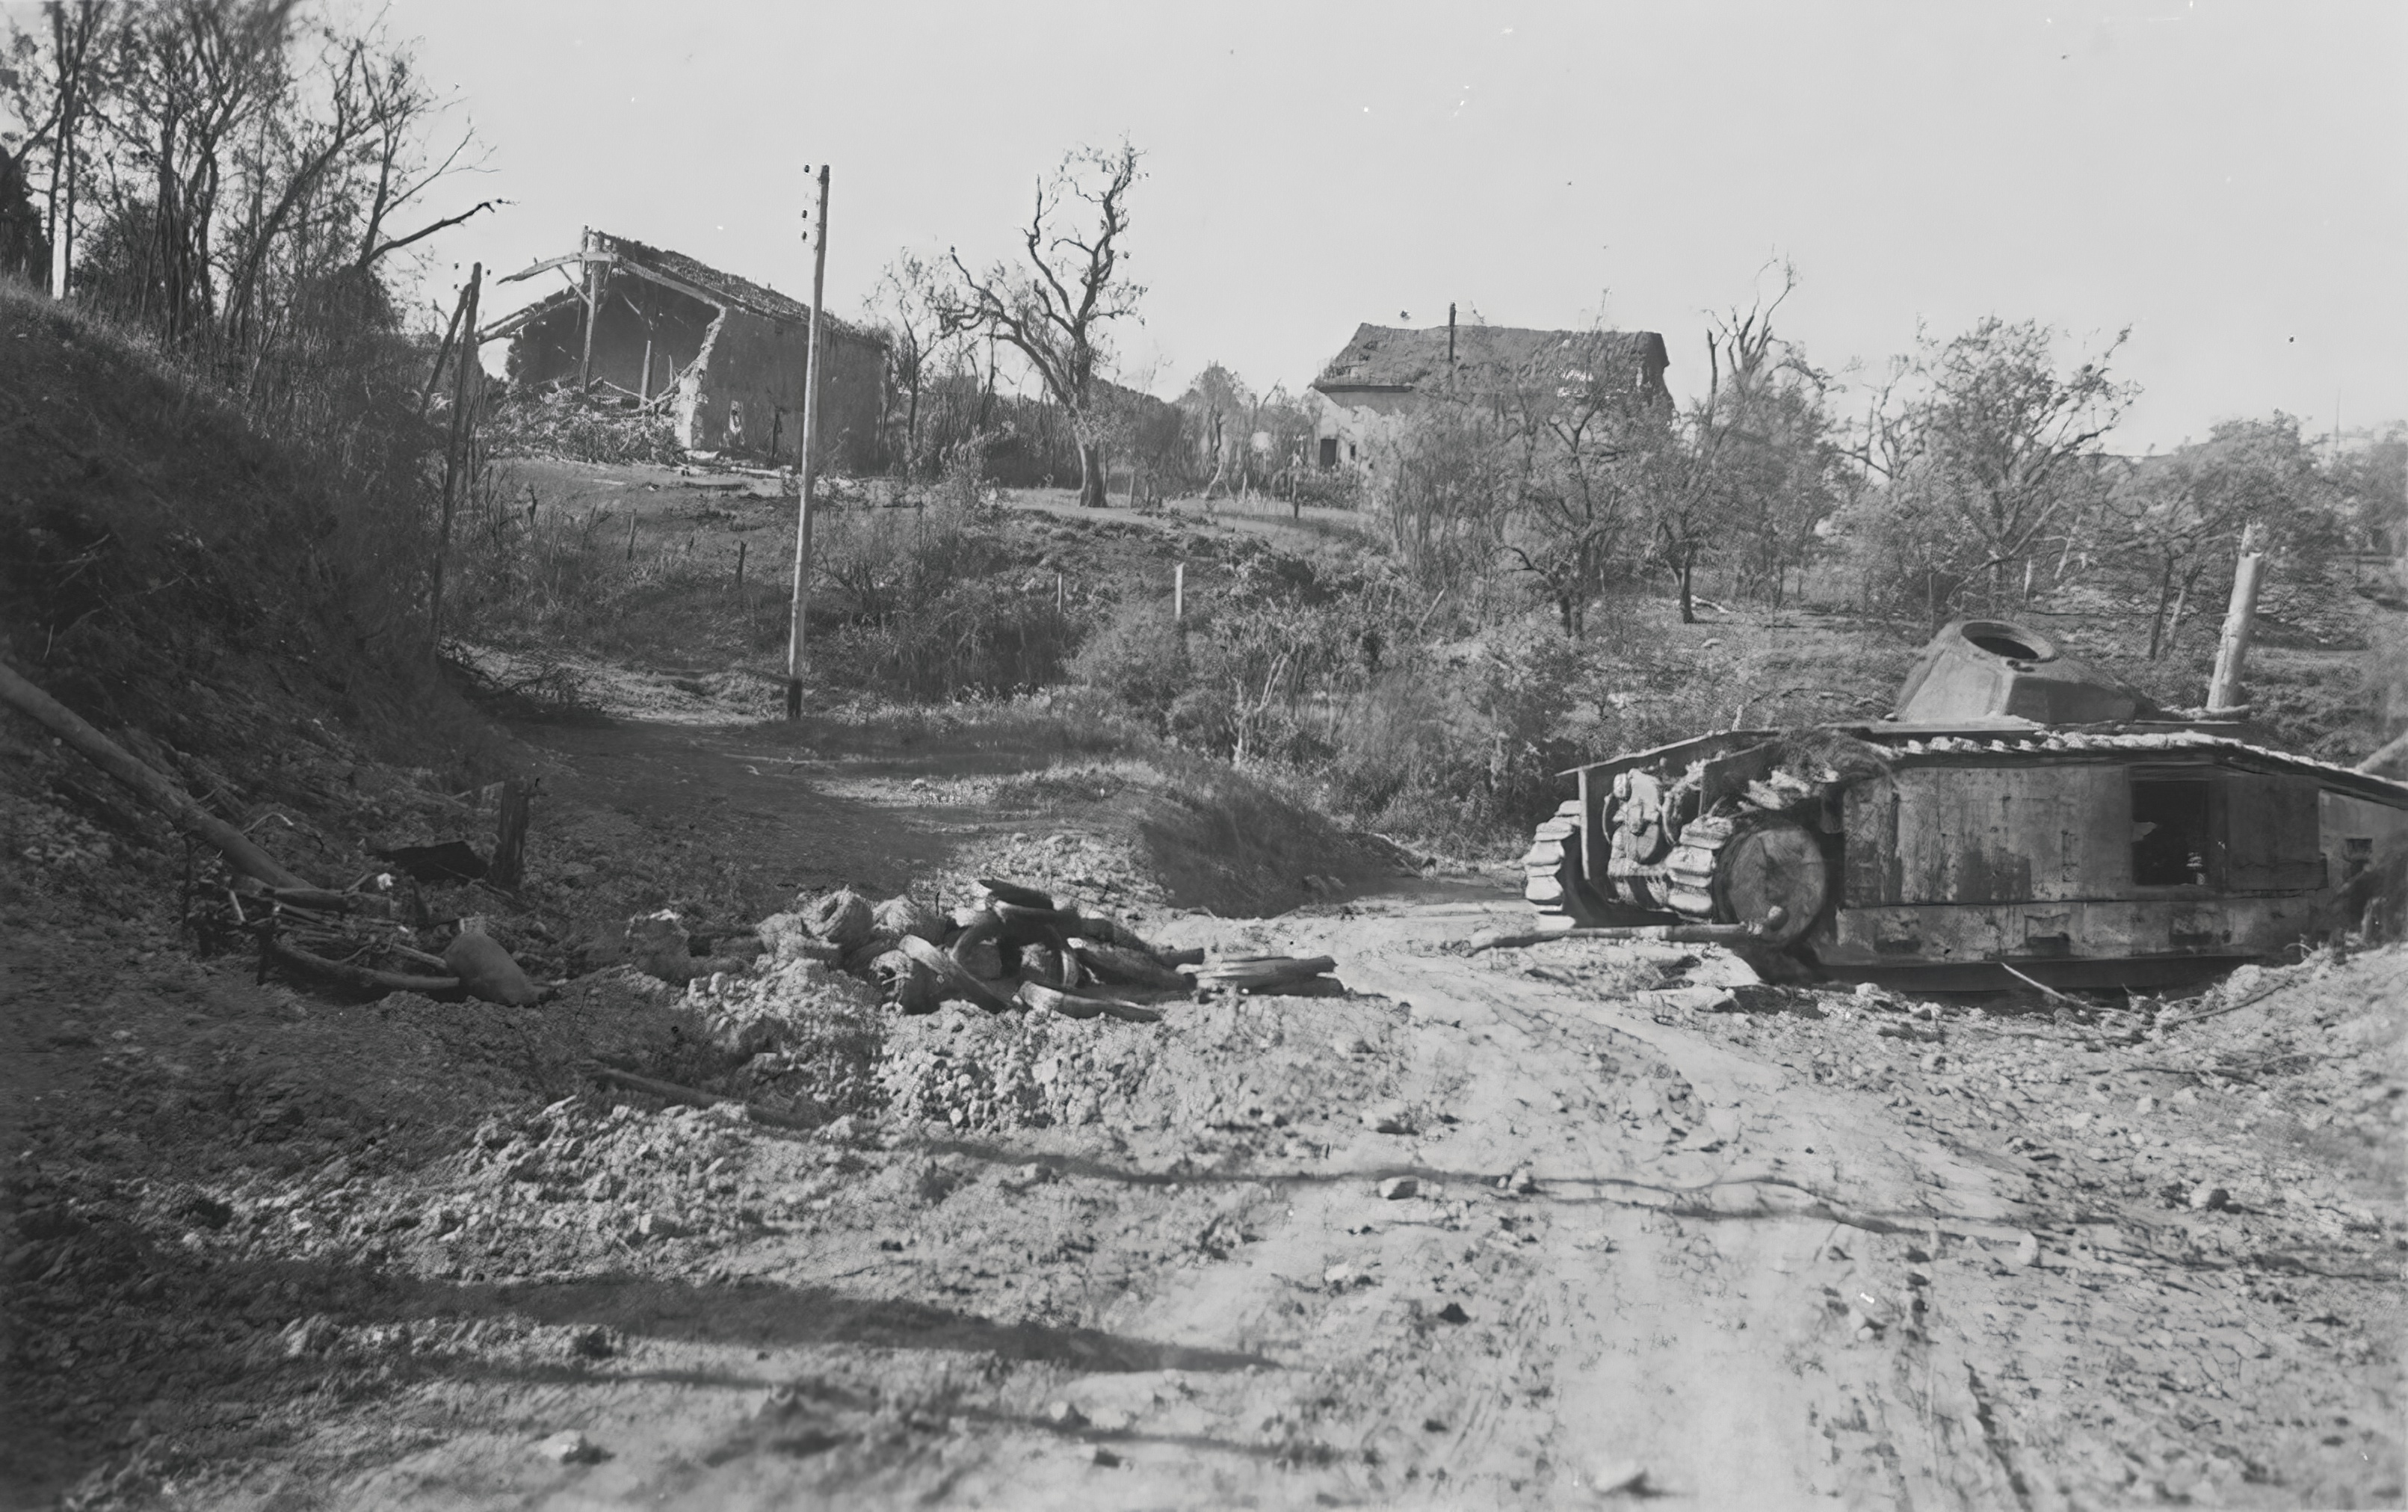 French Army Renault Char B1 destroyed near Stonne Battle of France May 1940 NIOD